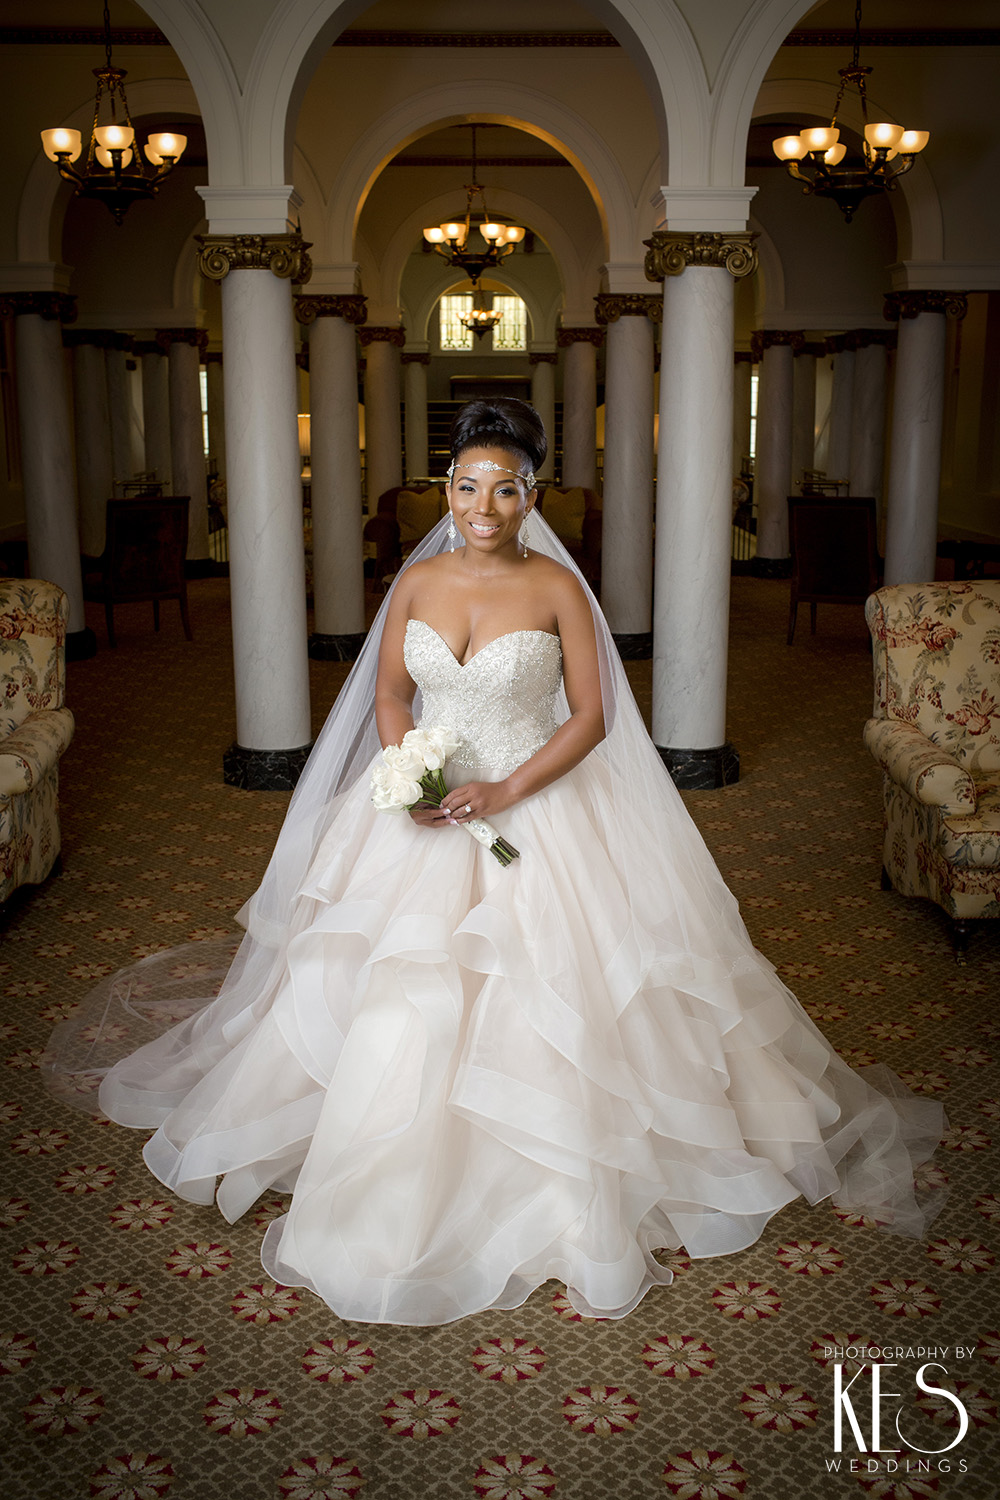 KES Weddings Bridal Photos Capital Hotel1.JPG